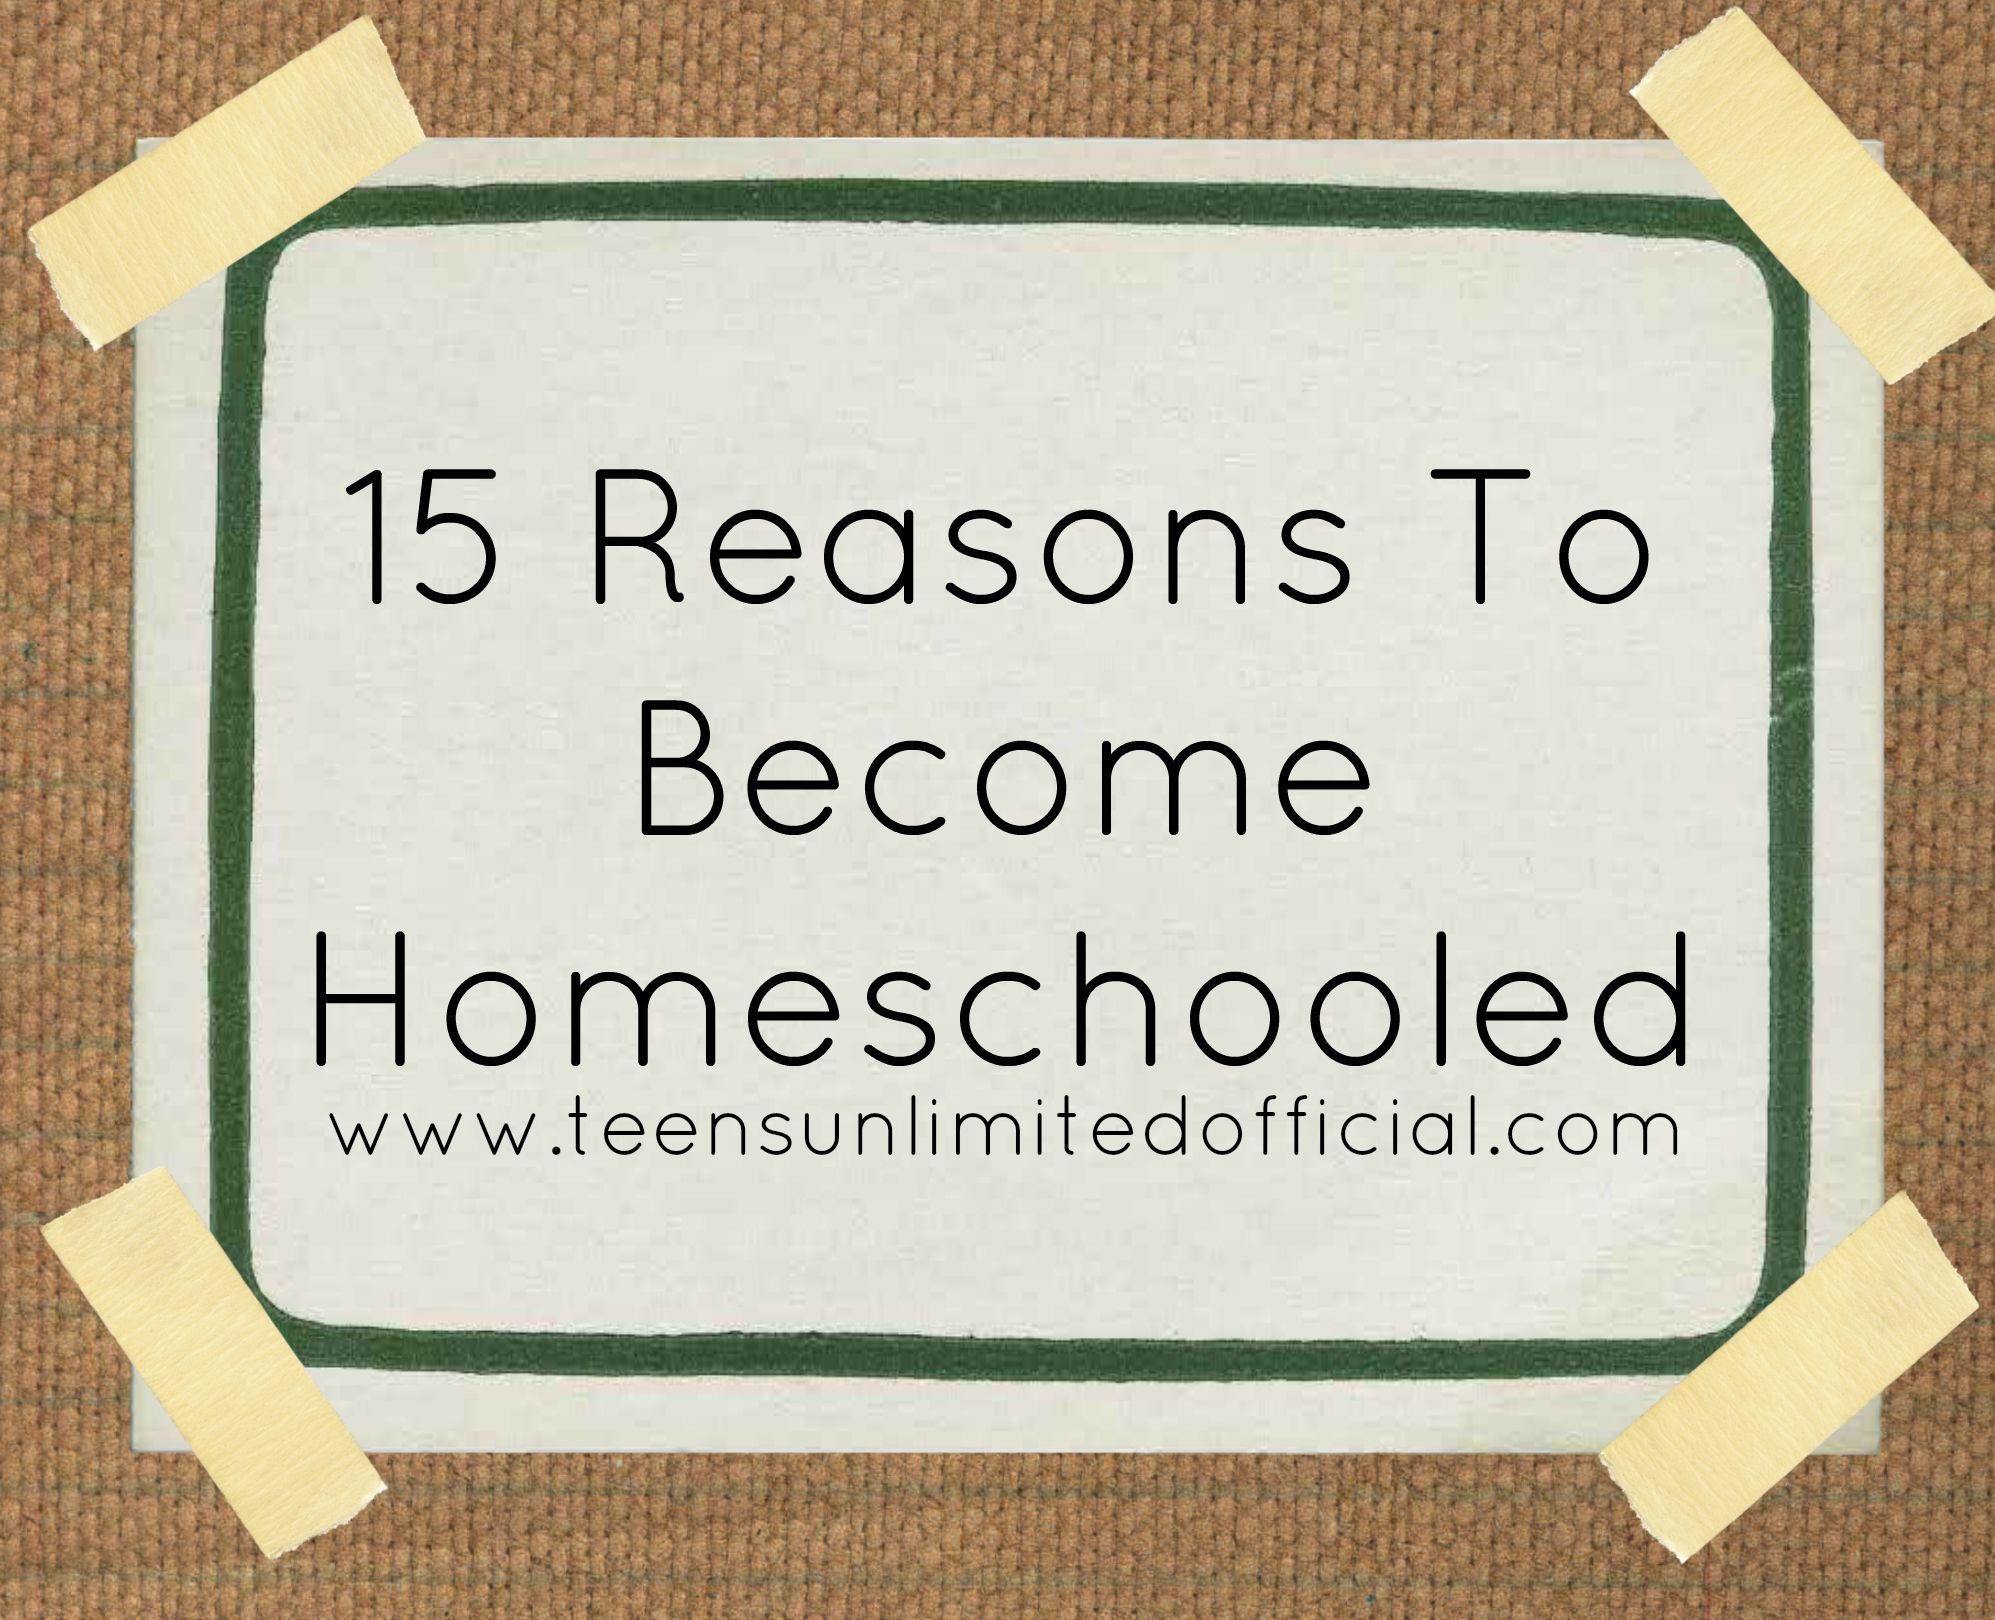 15 Reasons To Become Homeschooled With Images